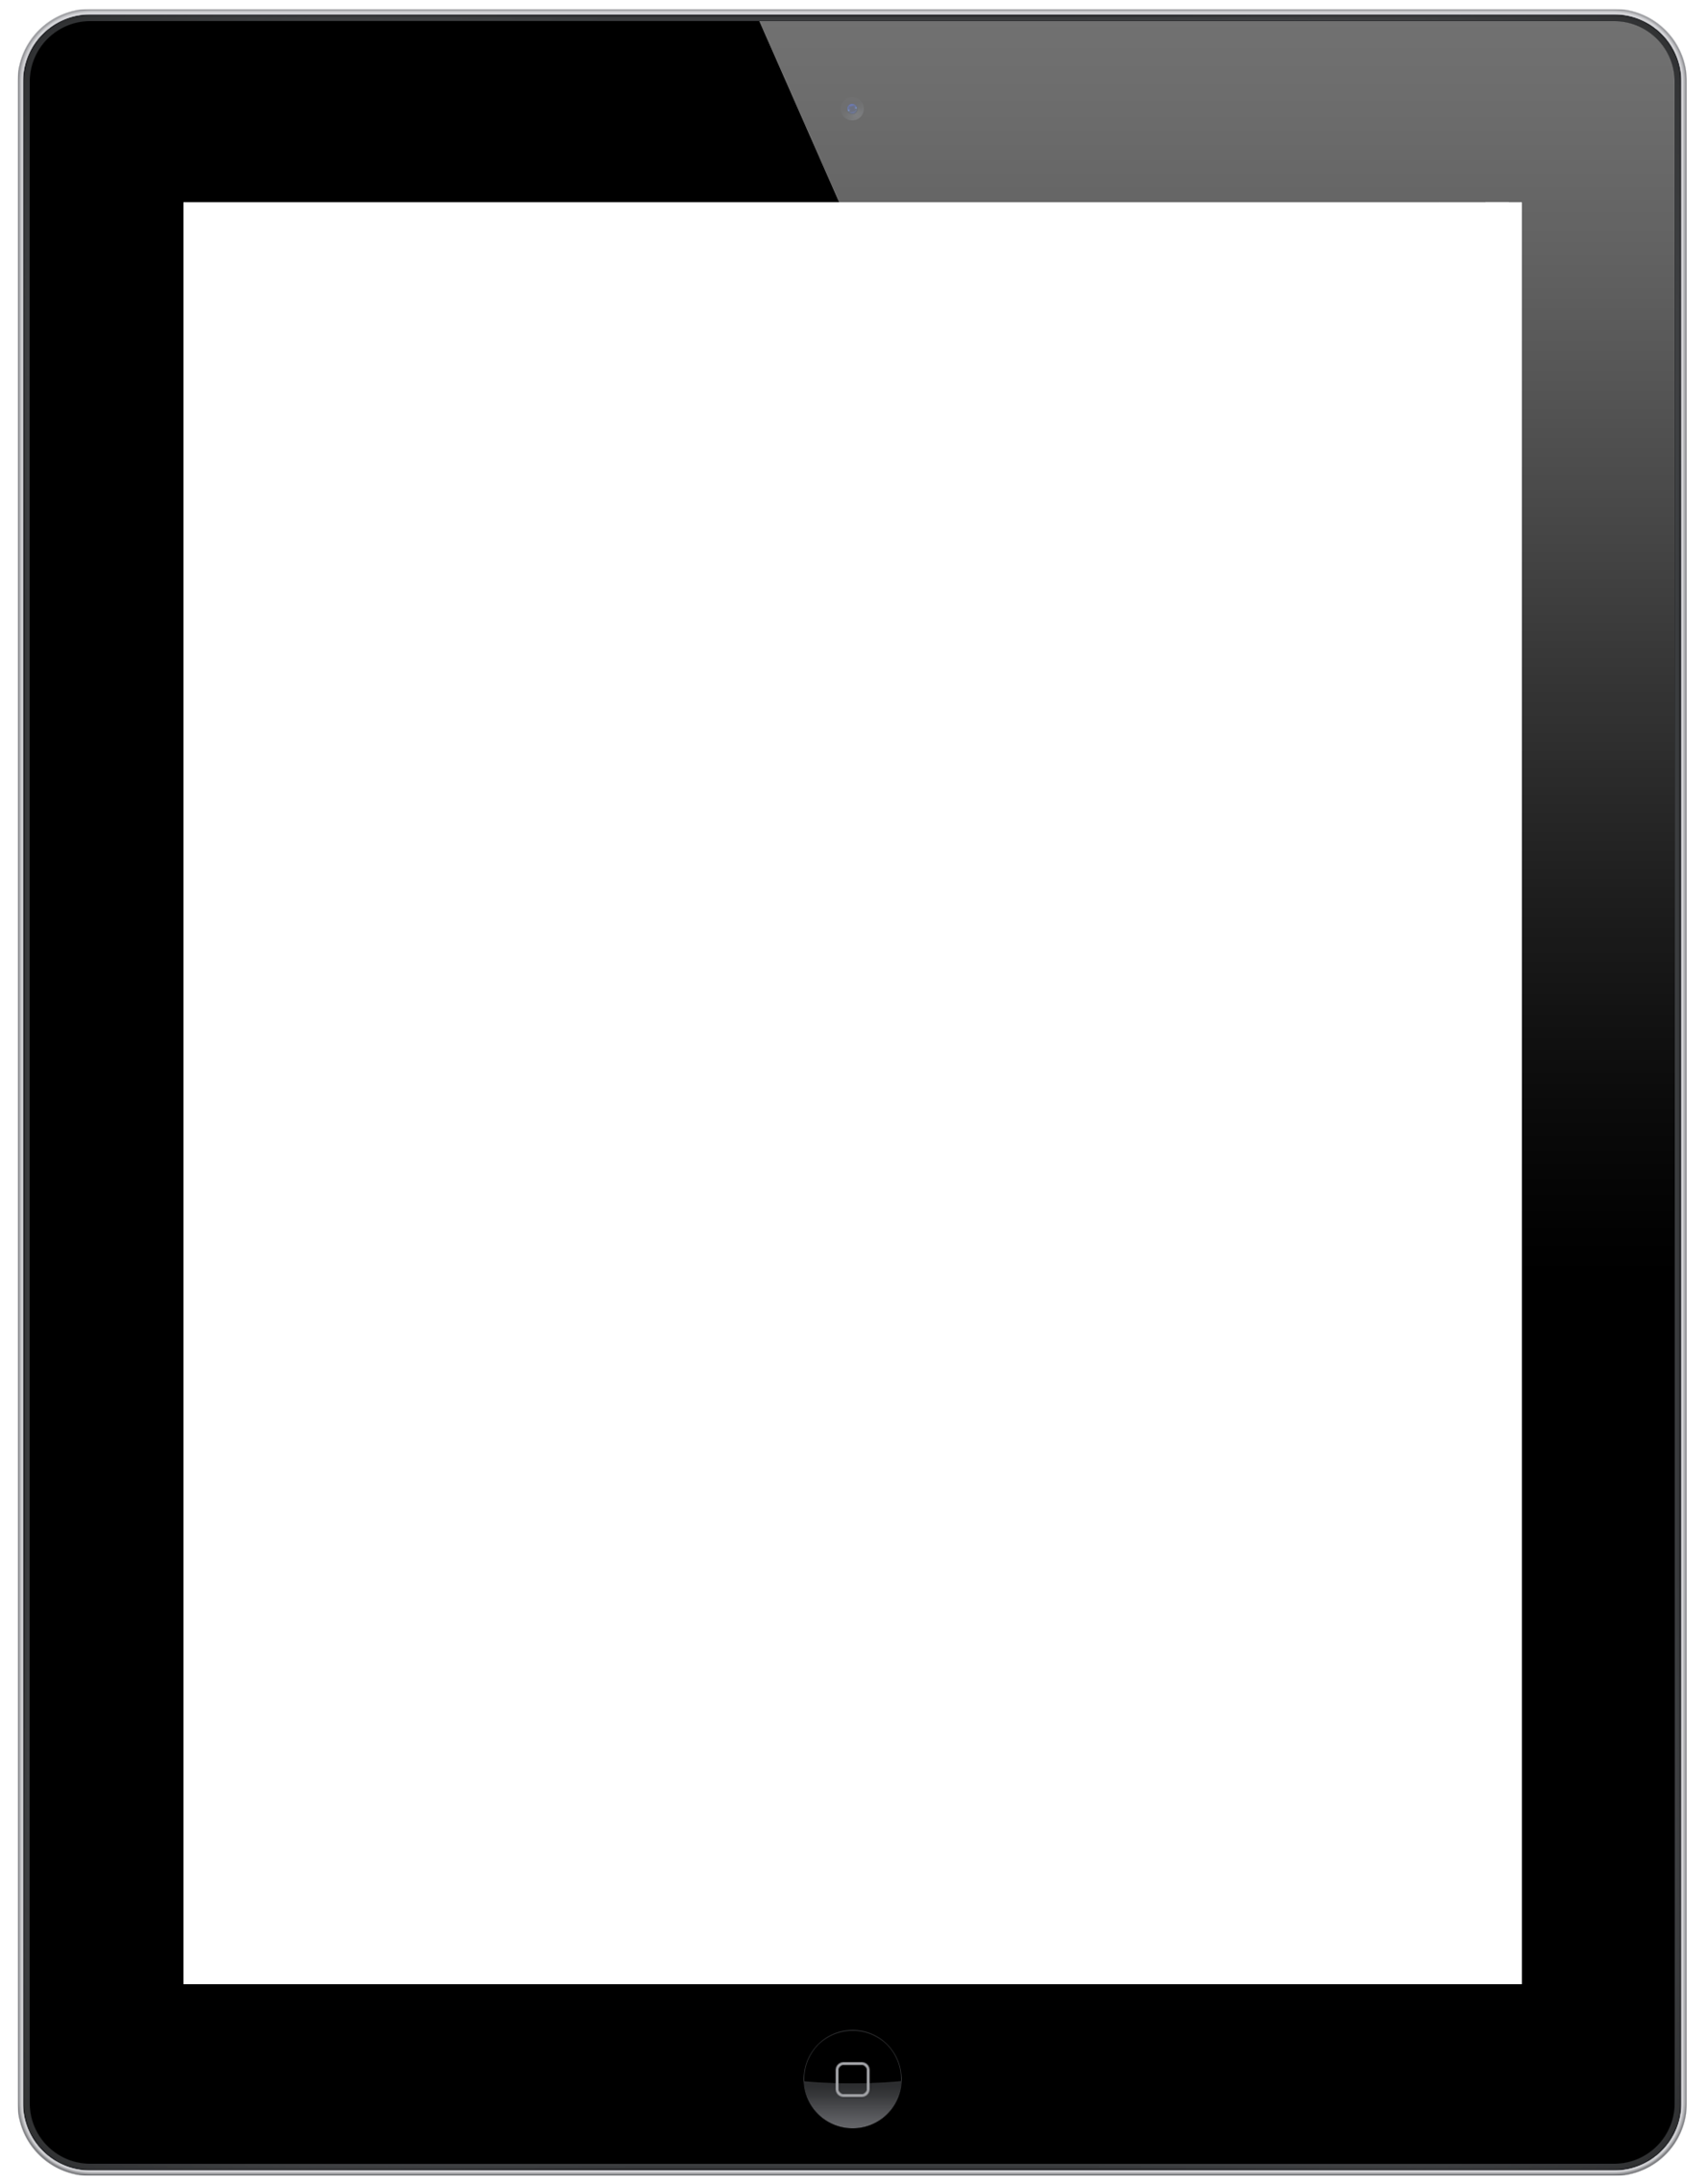 Ipad Tablet Png Image Kindle Png